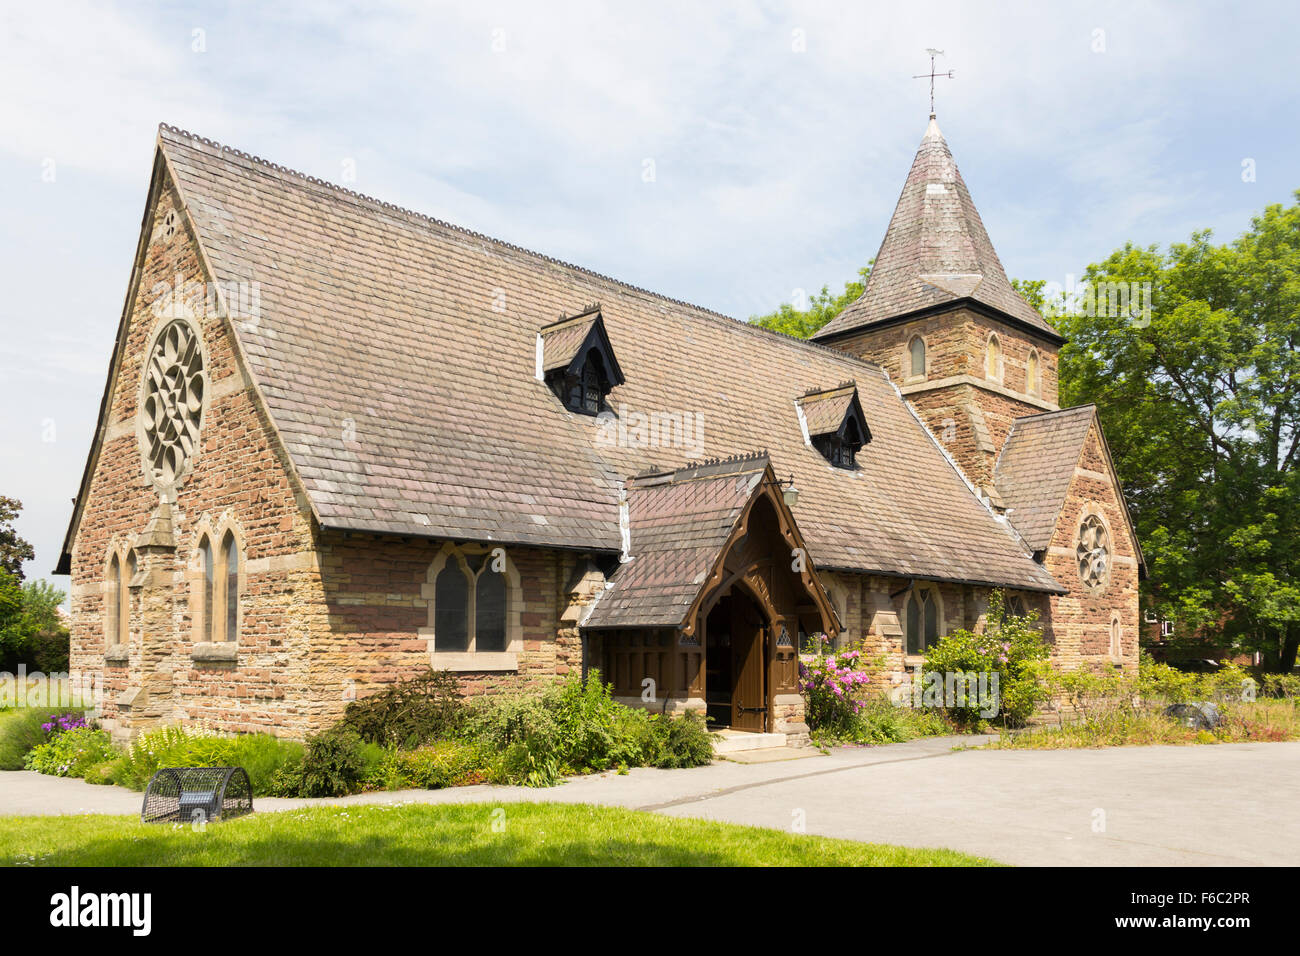 The church of St. John the Baptist, Irlam, Salford. Church of England dating from 1866. - Stock Image